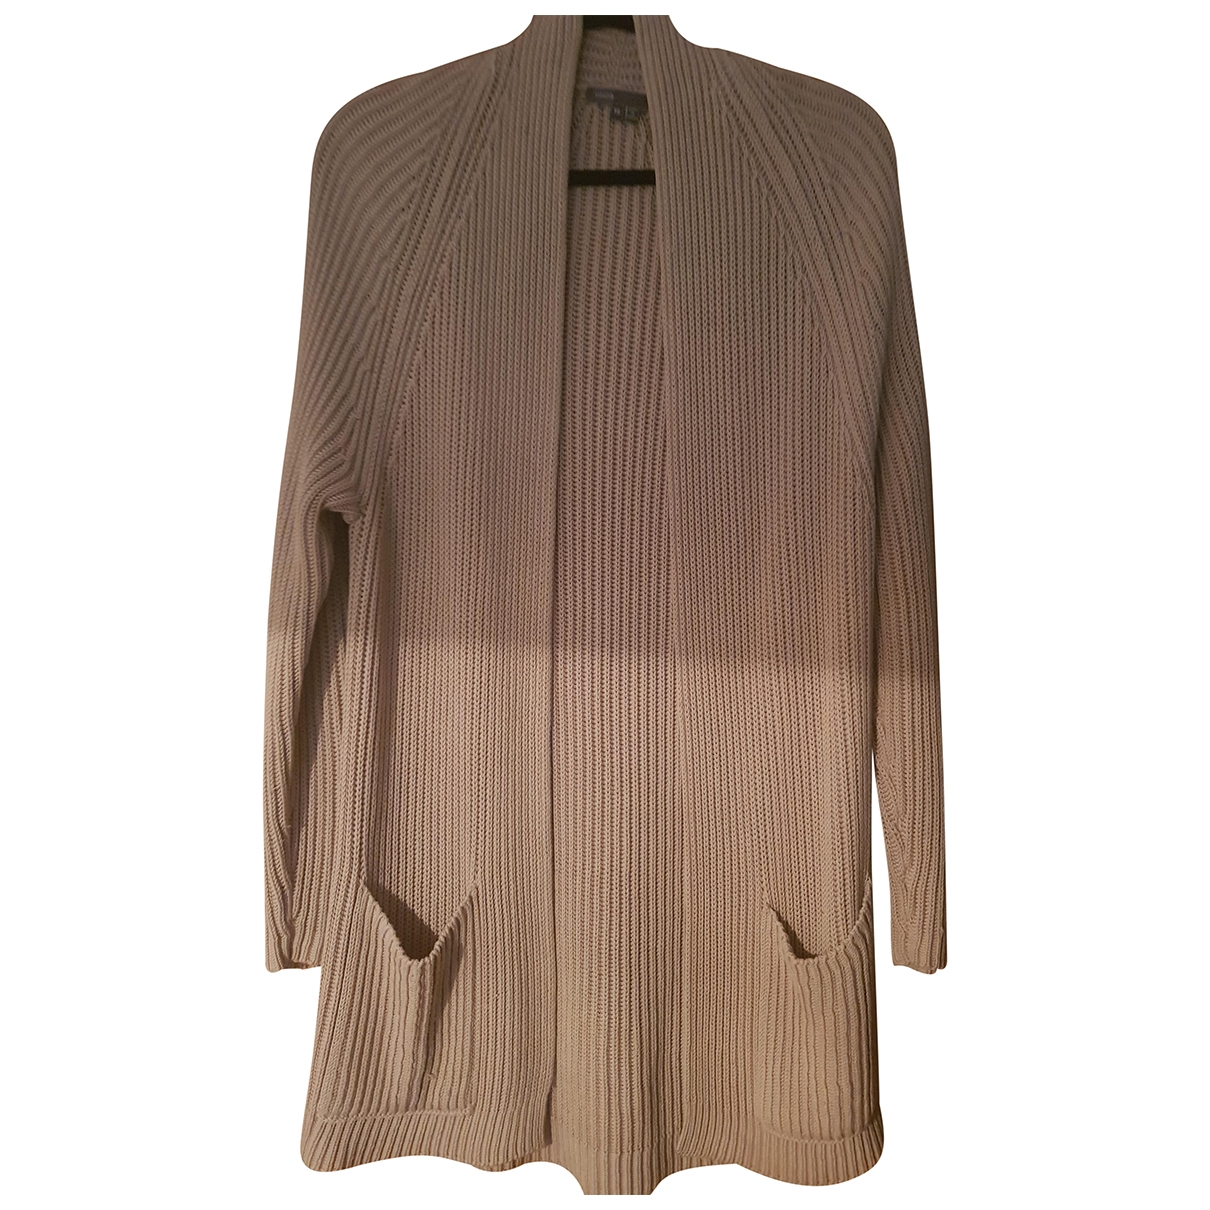 Vince \N Camel Cotton Knitwear for Women XS International